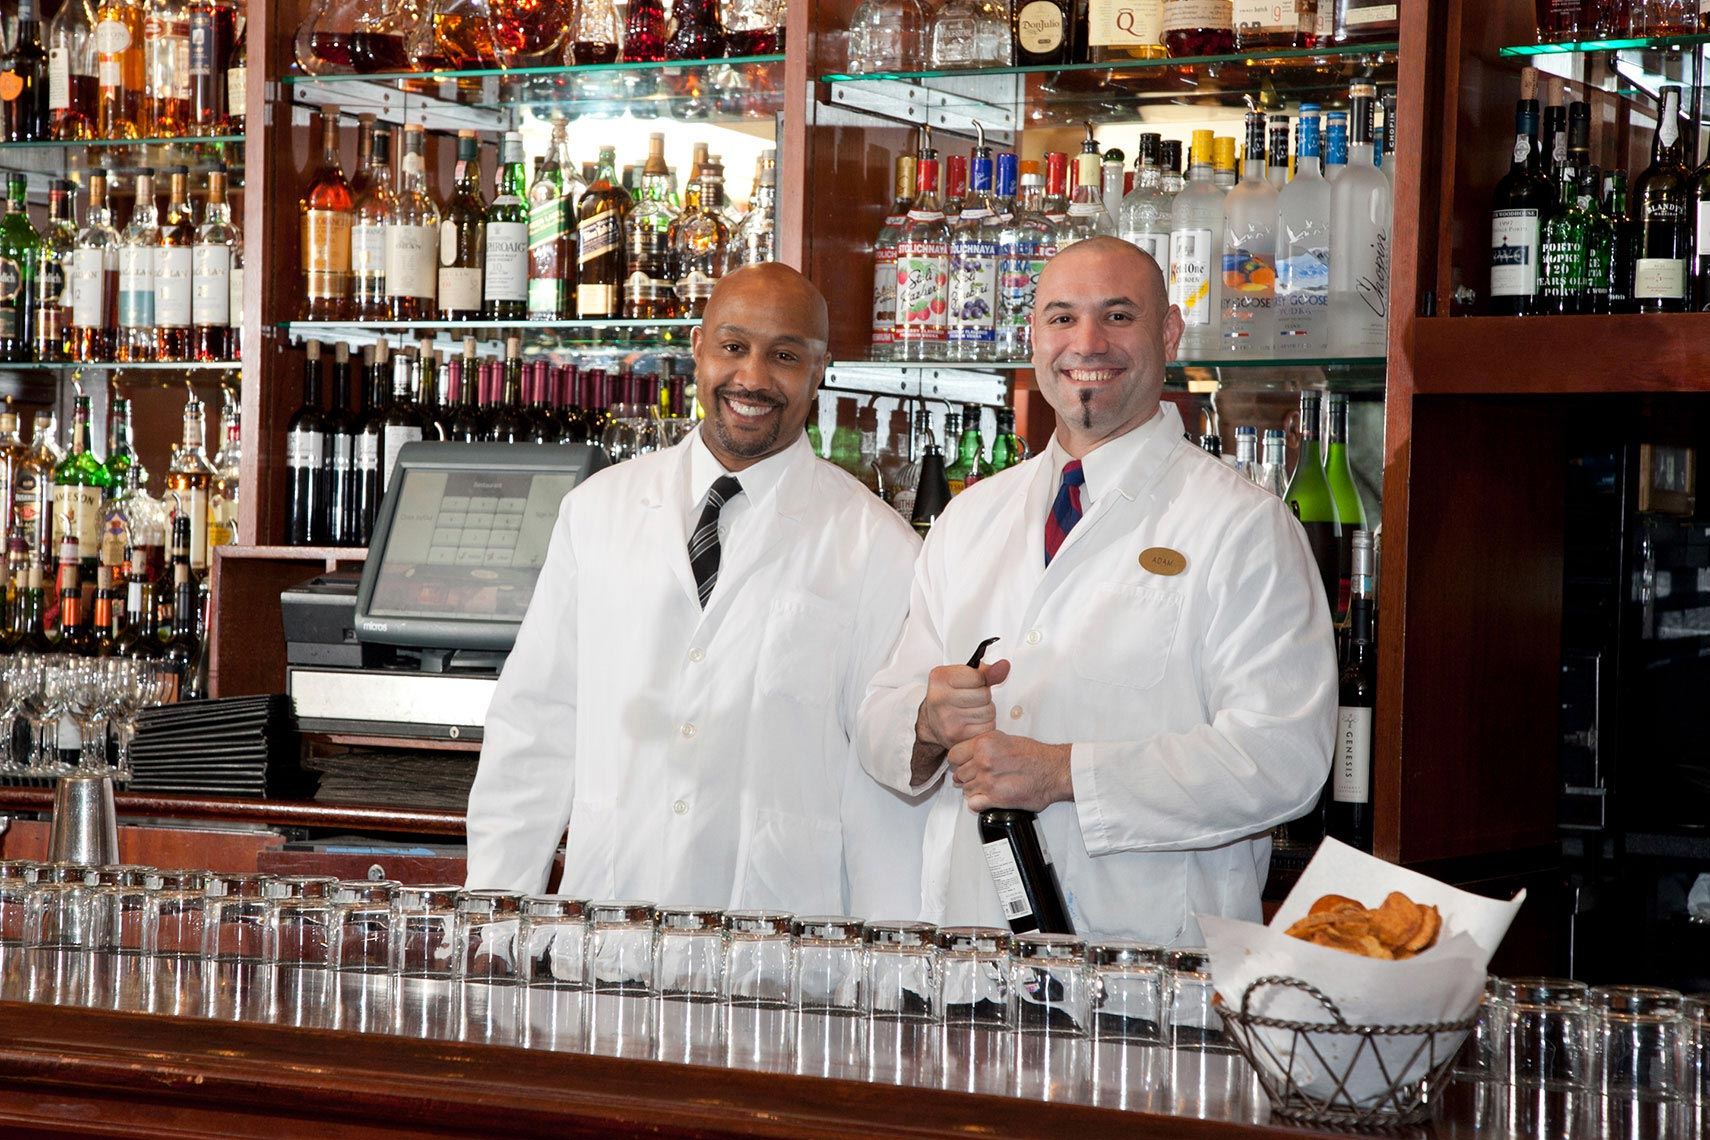 Two Friendly Bartenders